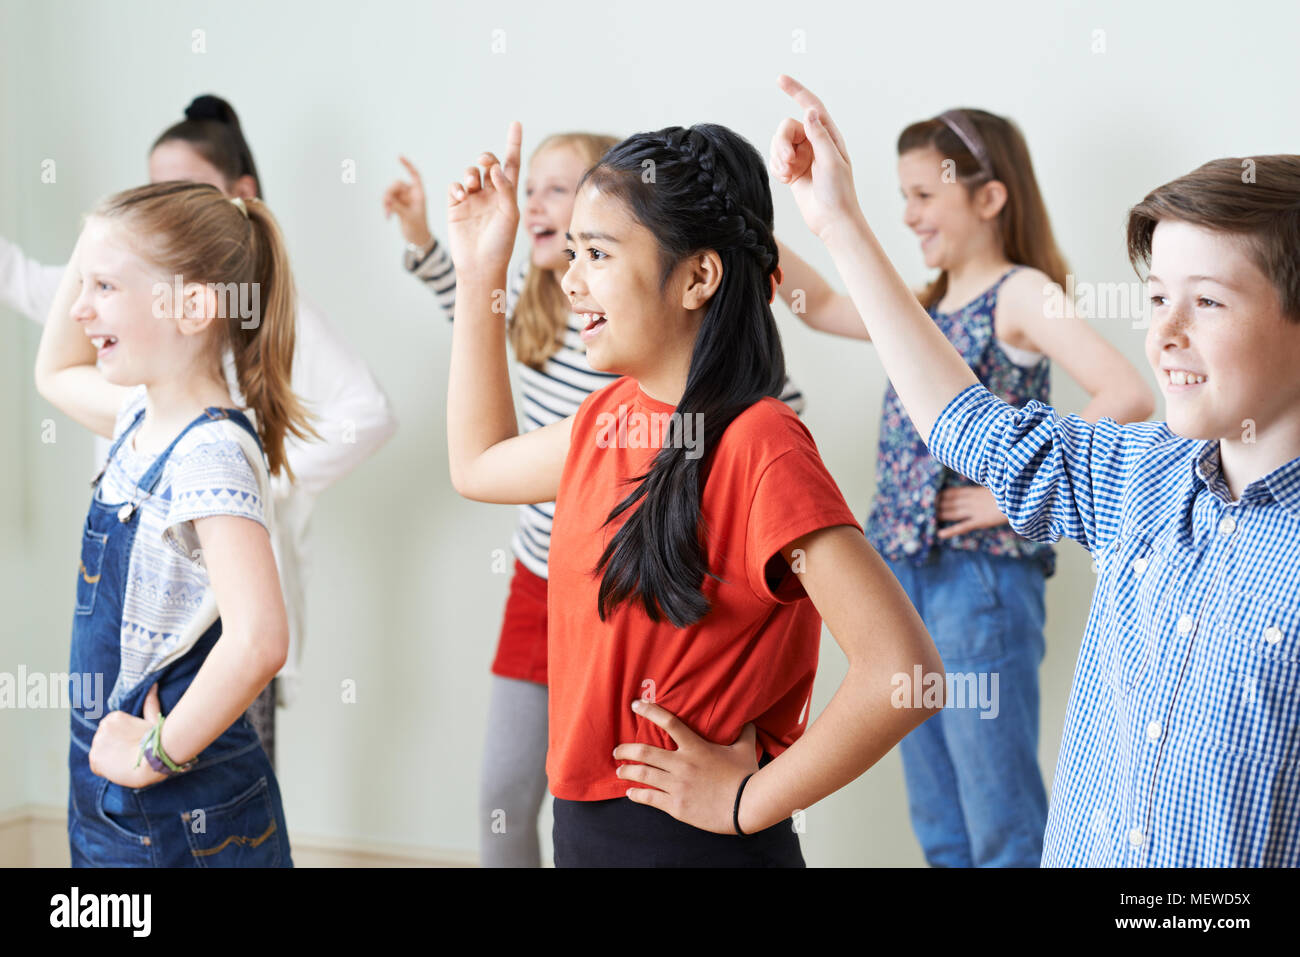 Group Of Children Dancing In Drama Class Together - Stock Image